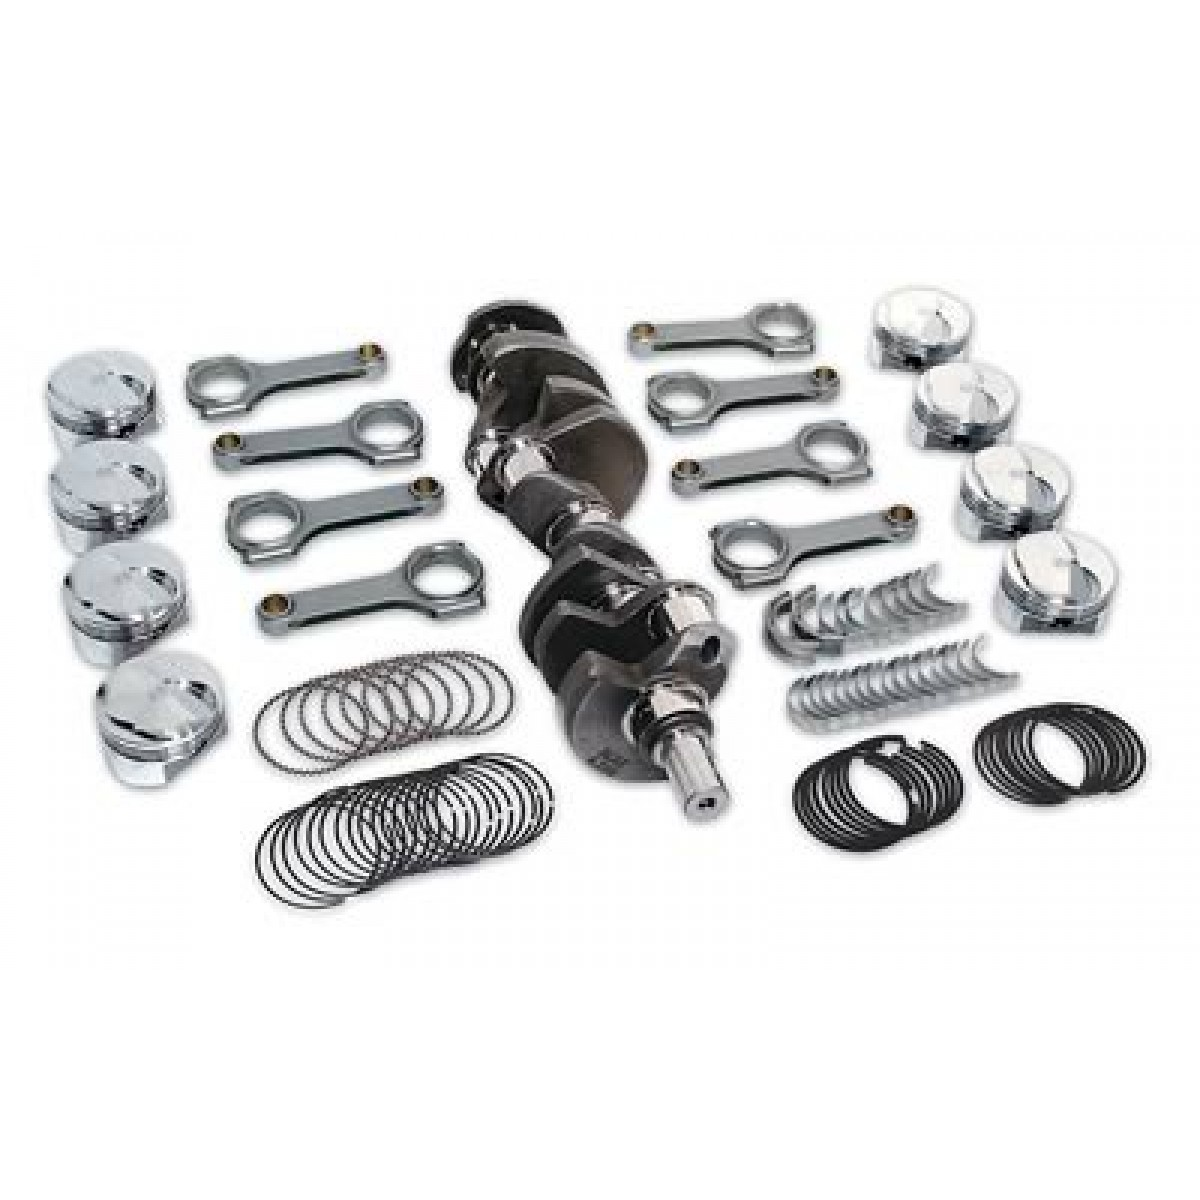 Chevy LS 5.3L To 5.9L SCAT STROKER KIT 24x Reluctor -7cc